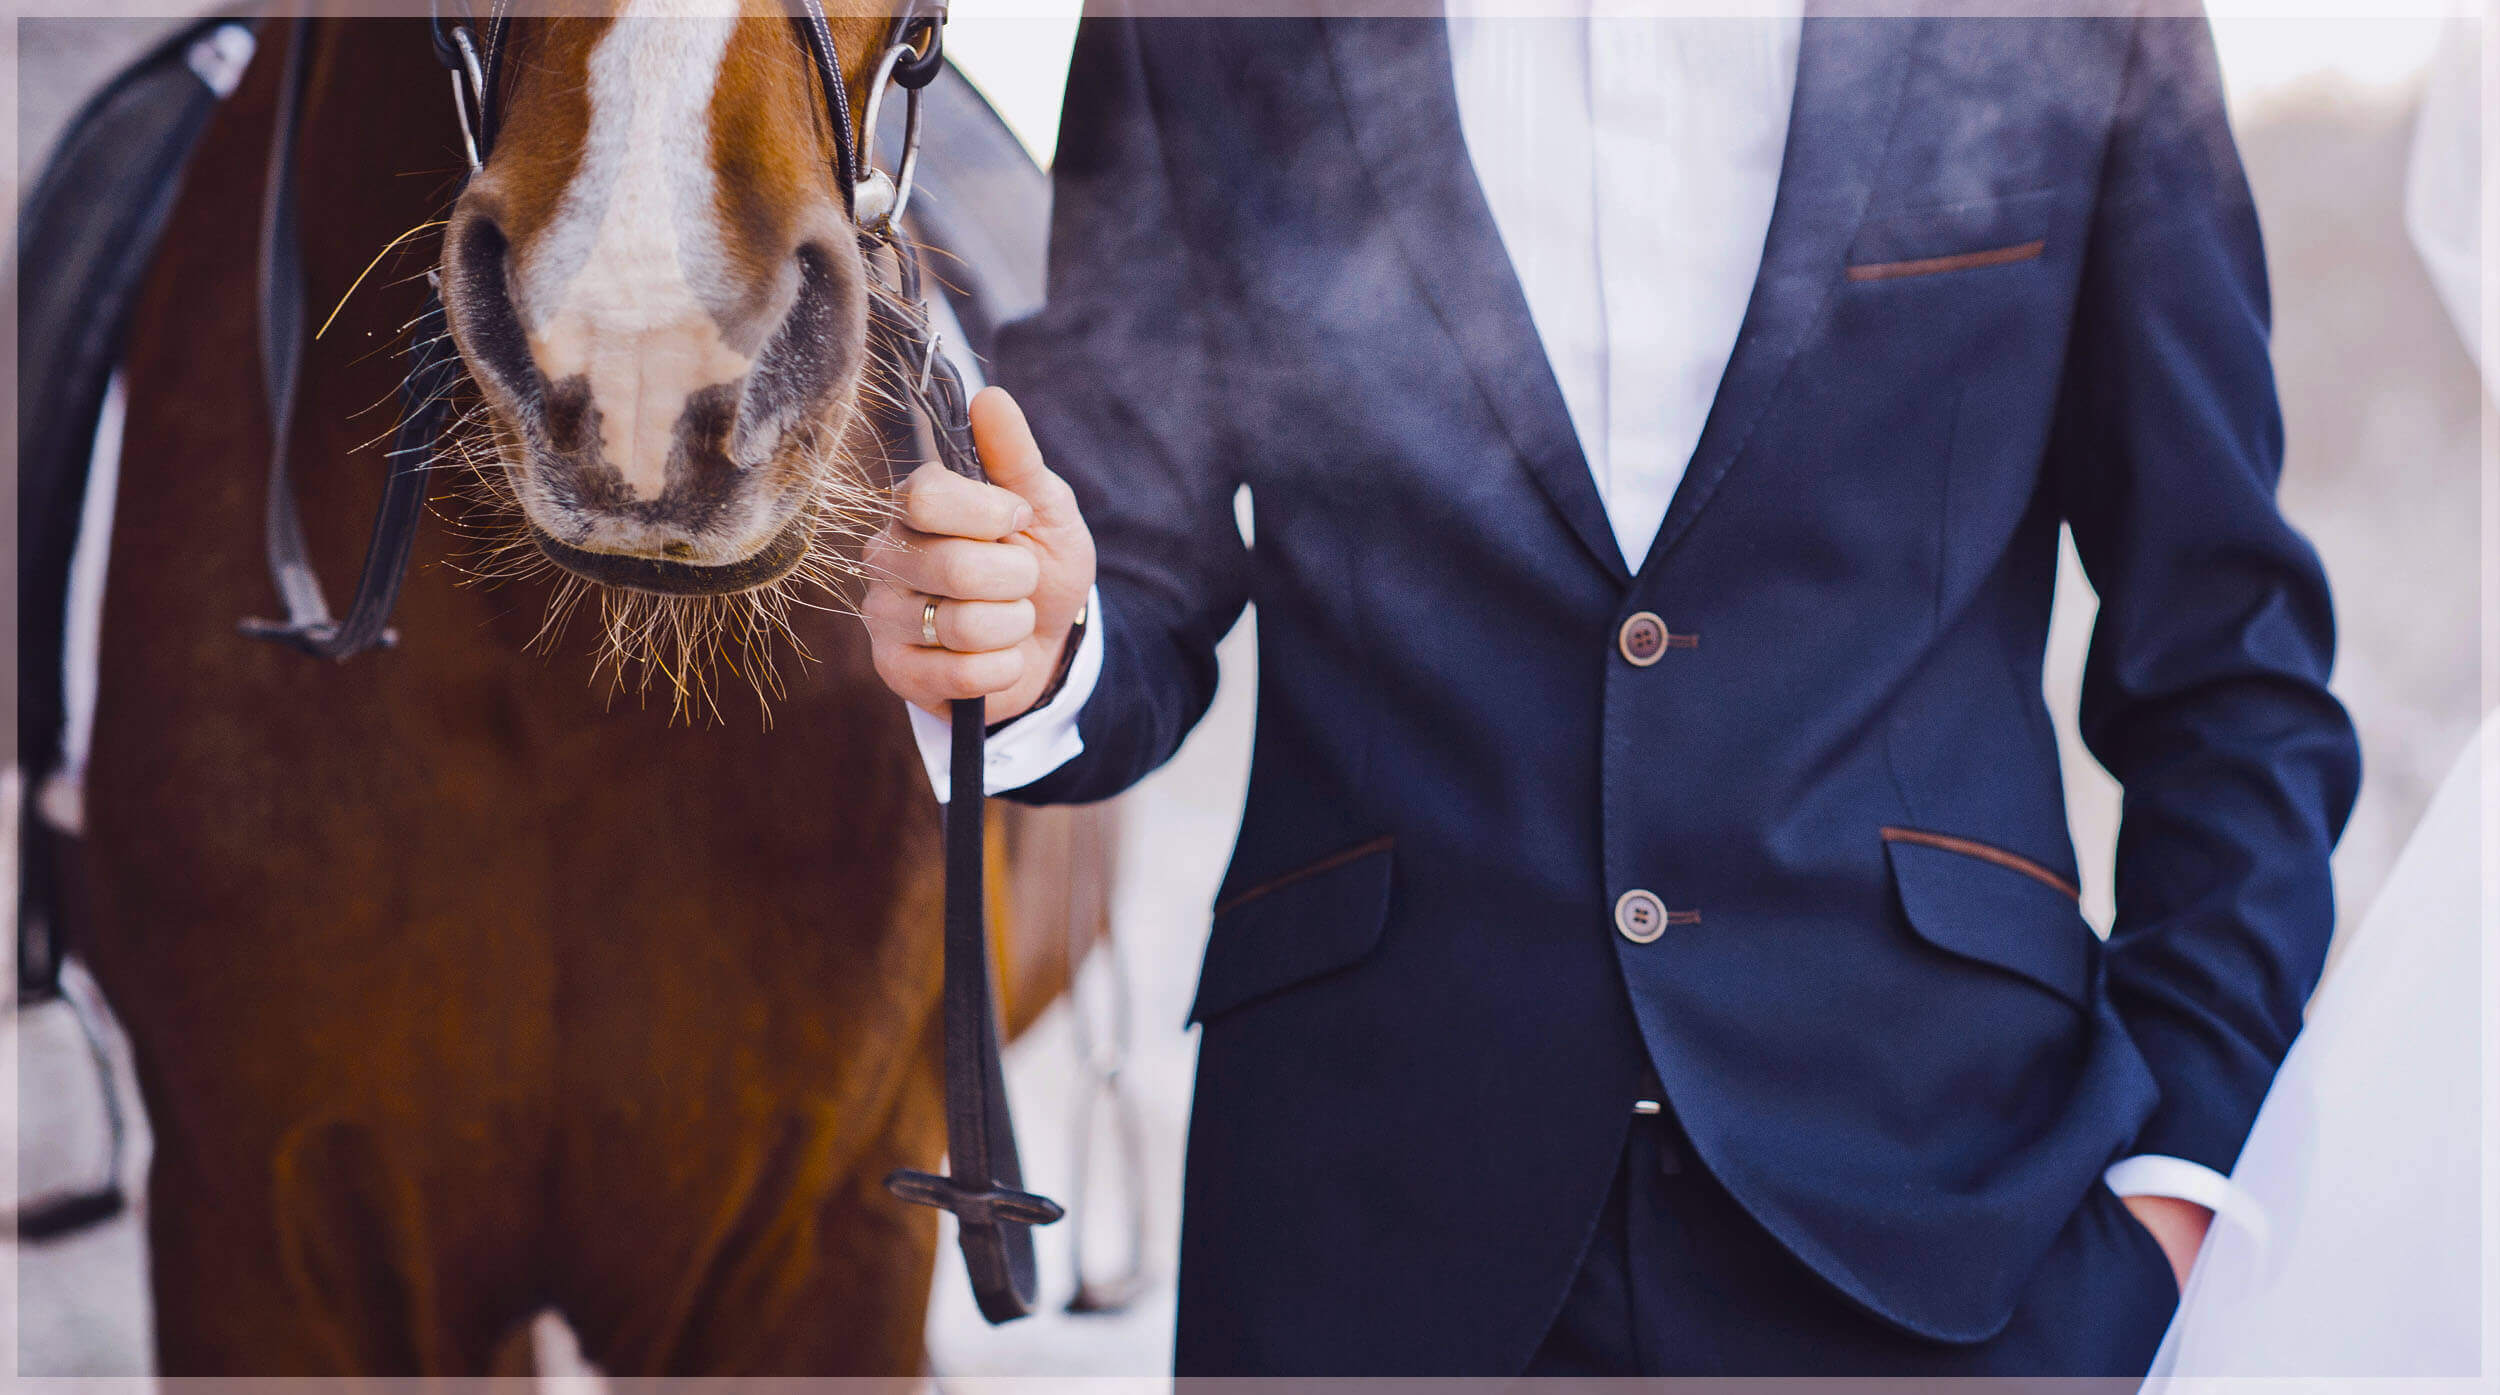 Groom Pictures-Groom posing next to a horse